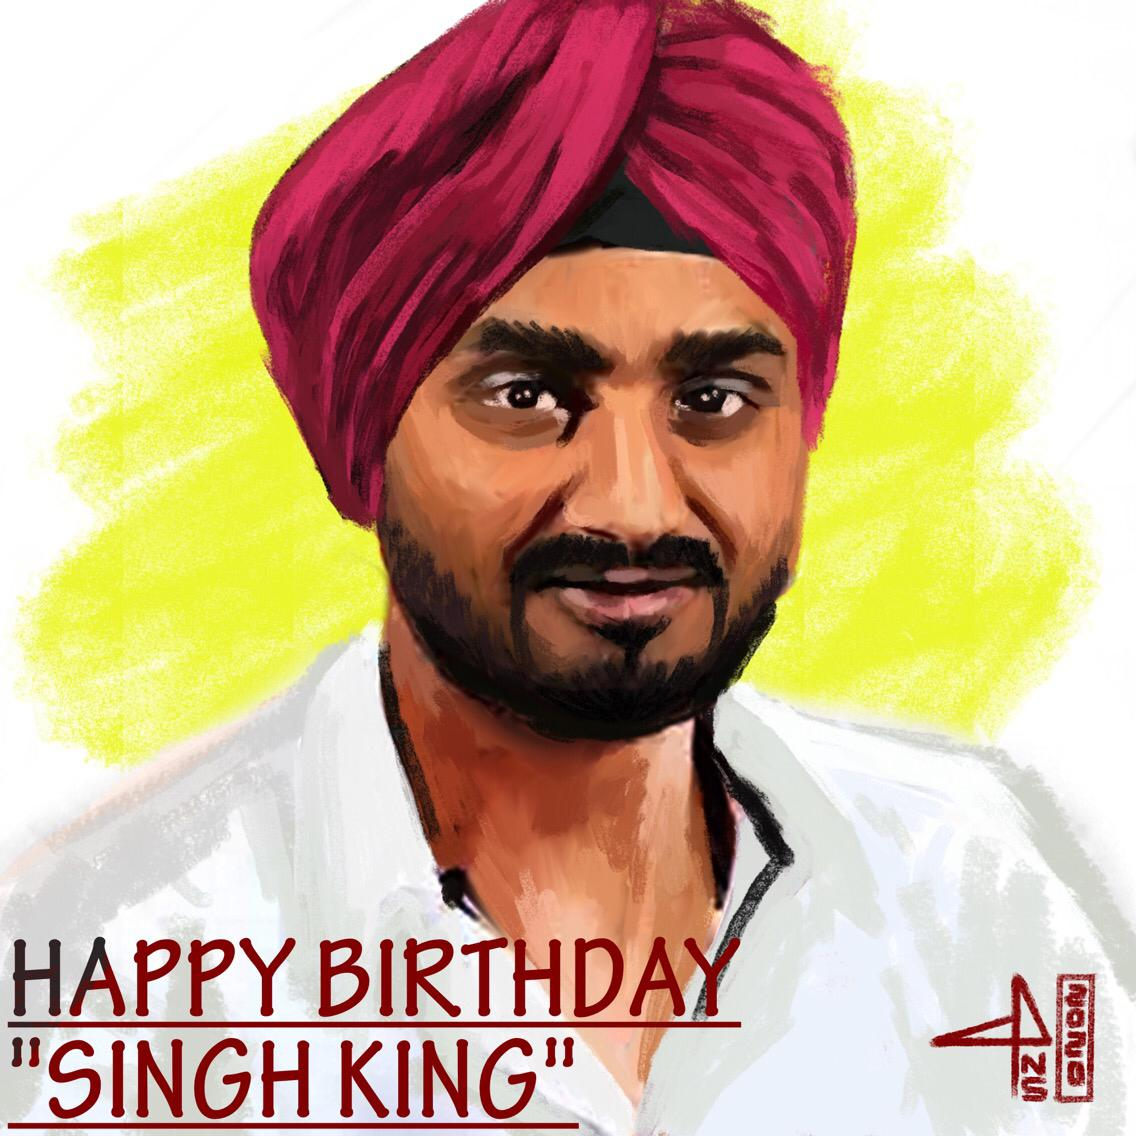 Big brother, Well Wisher and a True Inspiration. To me, you are all these things and more @harbhajan_singh Paji  You are such an amazing Human and You are the most Humblest human being I ever known and the one I most admire!  Happy birthday, dear Anna! #Bhajji Paji